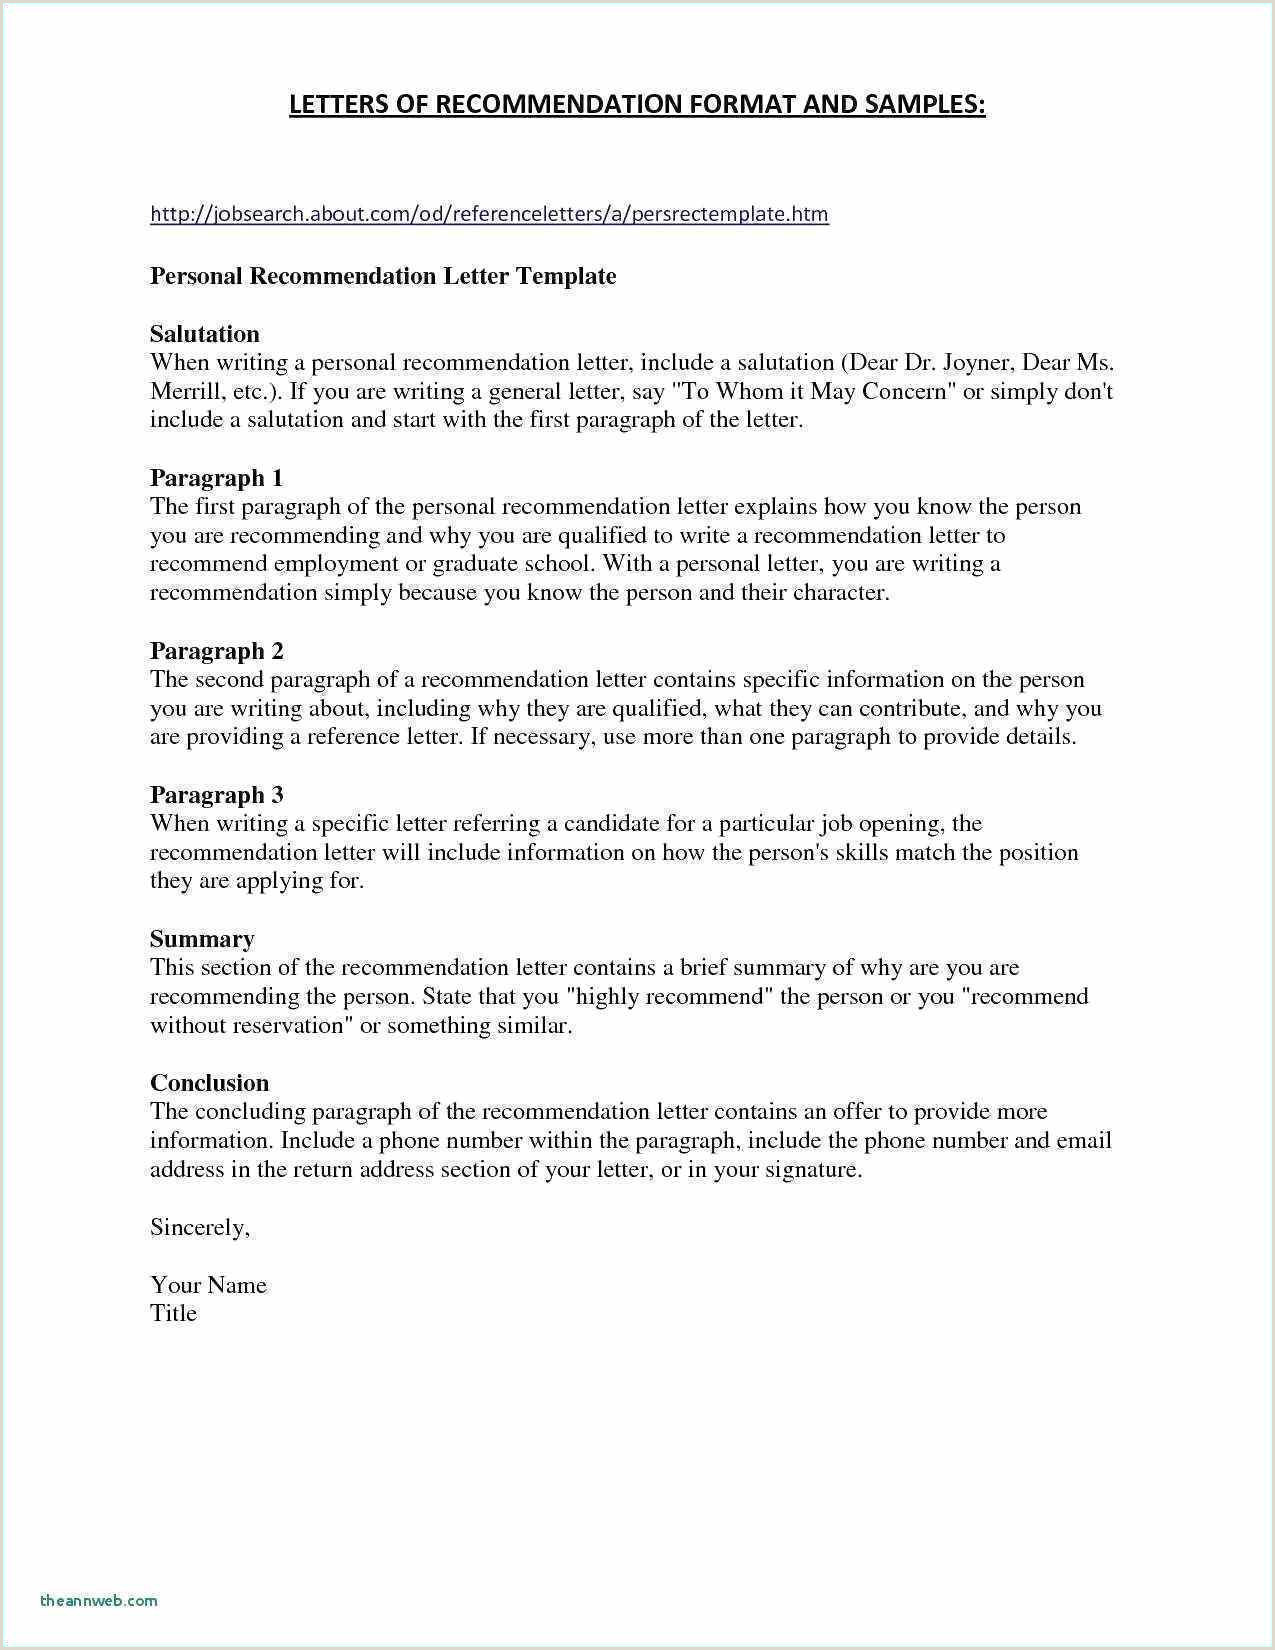 Loss Prevention Manager Cover Letter 10 Cover Letter for Finance Position